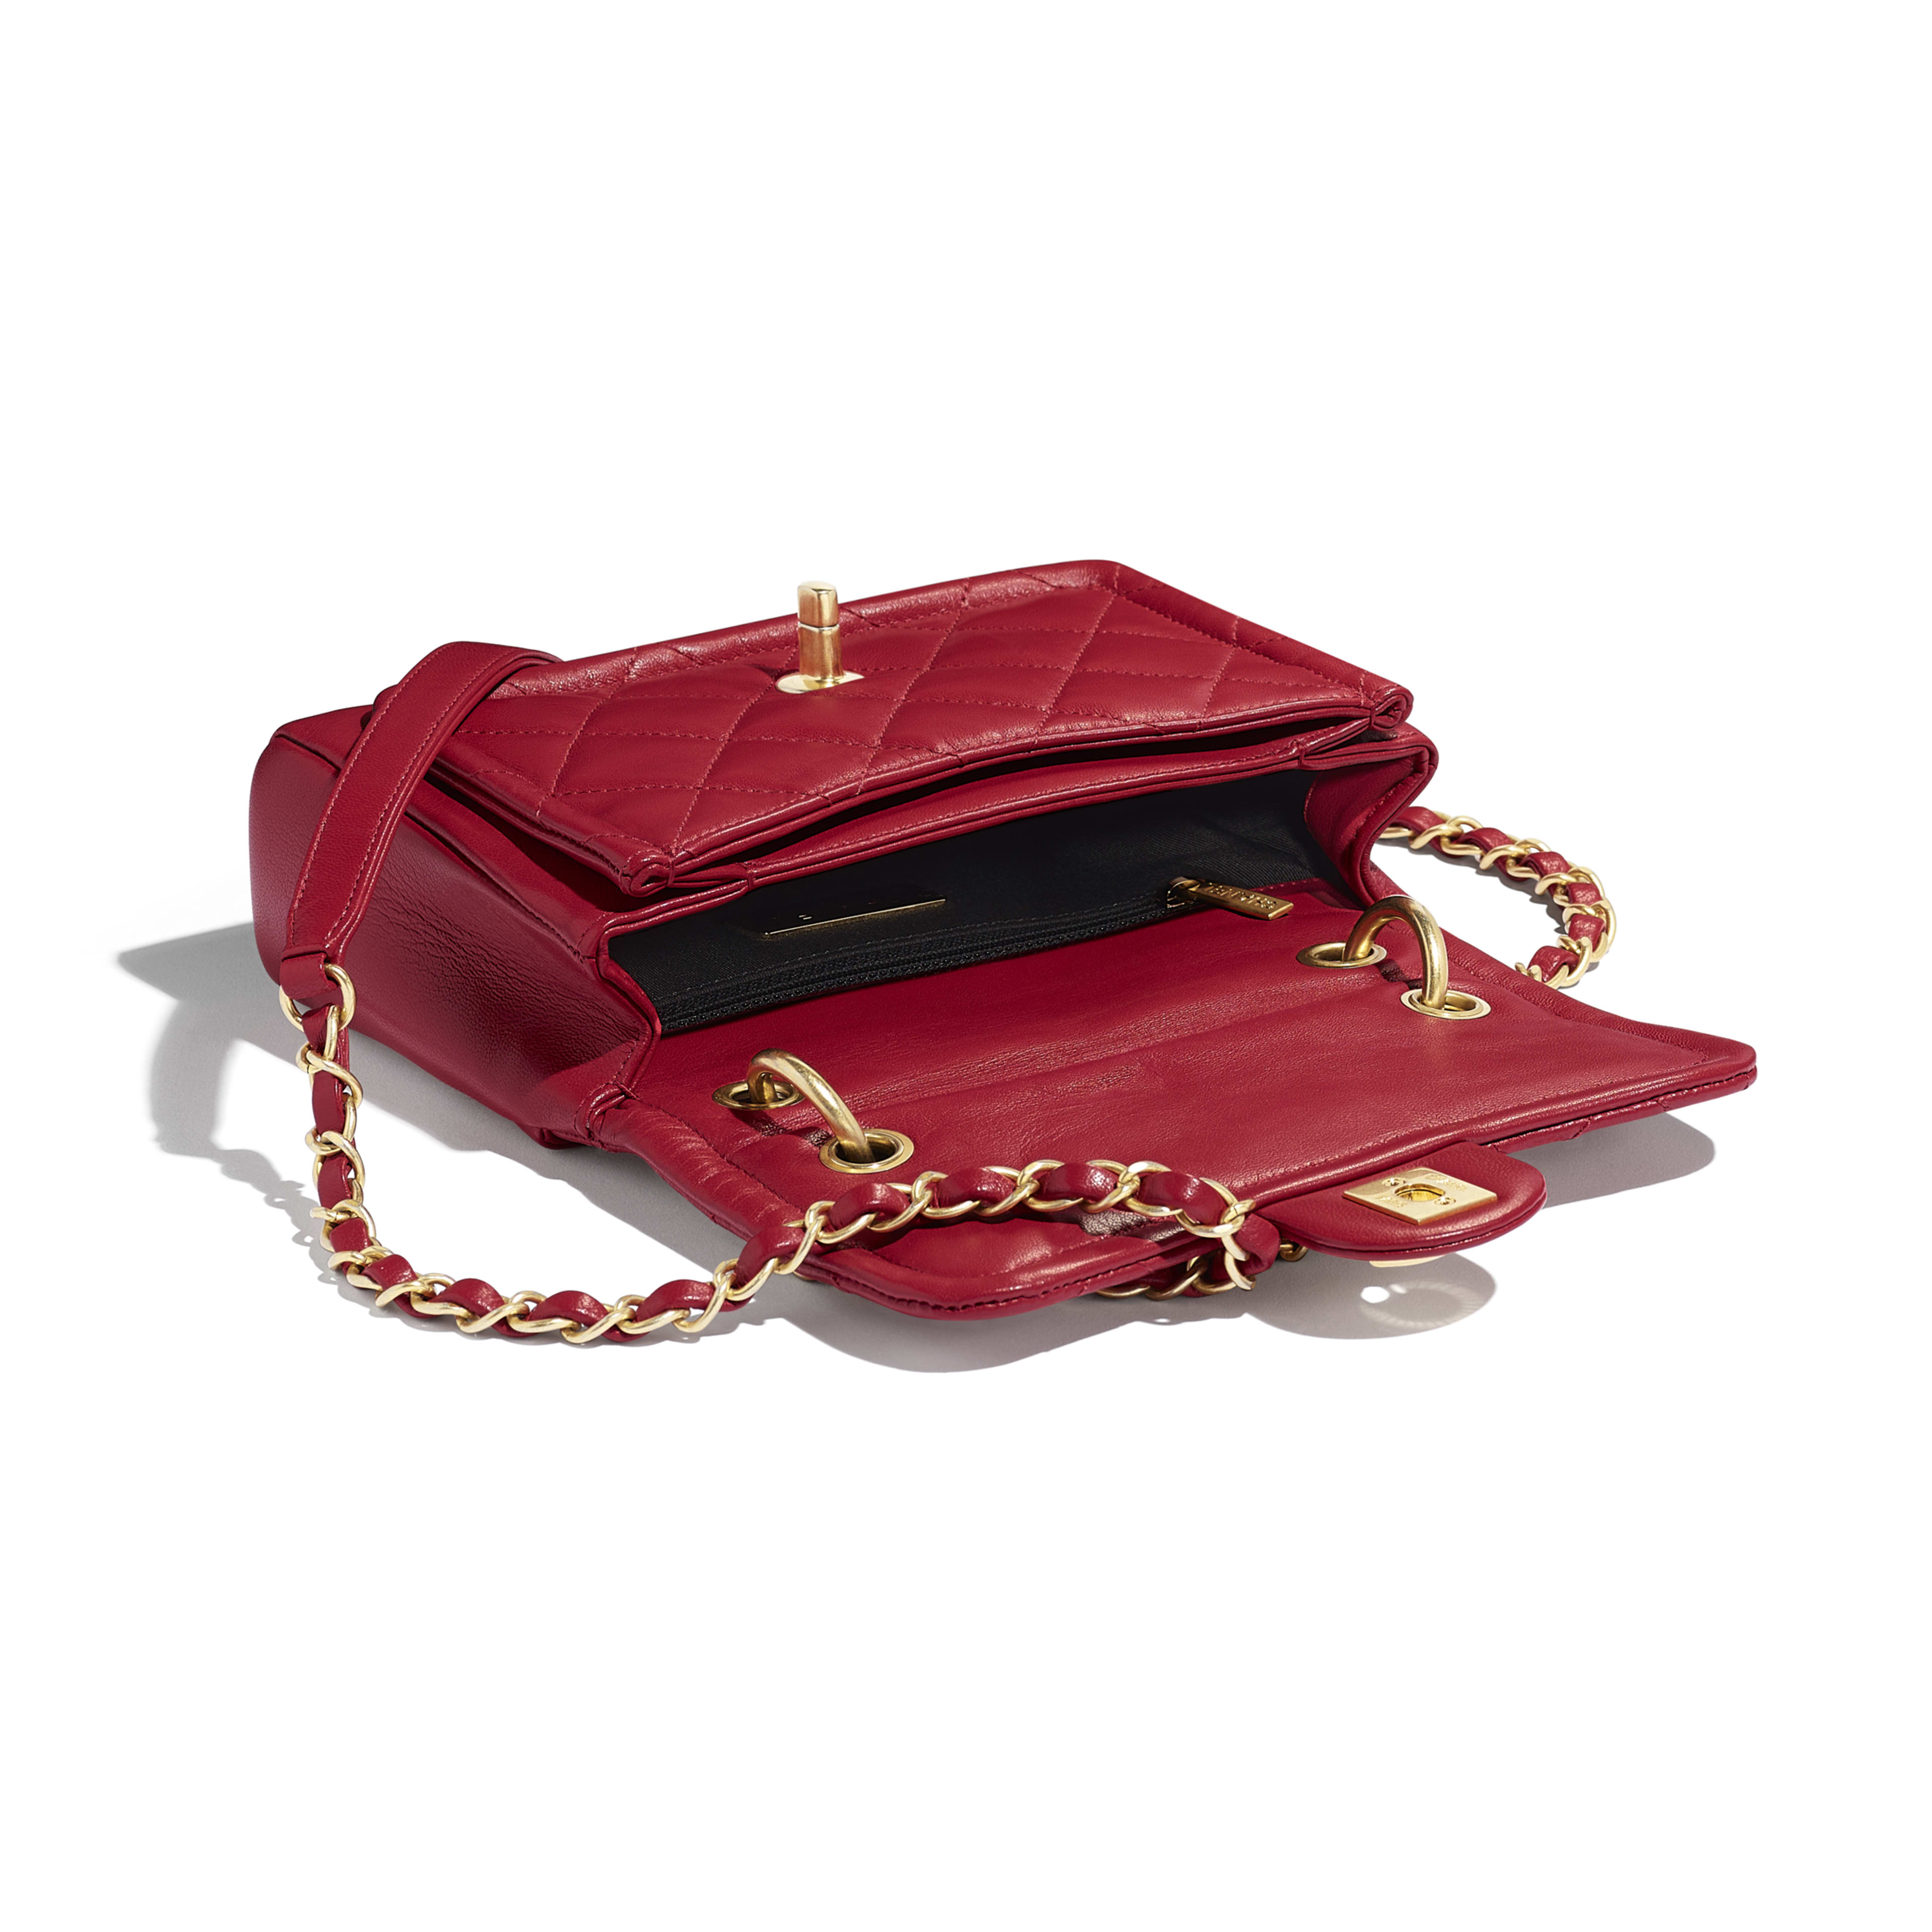 Flap Bag - Red - Lambskin - Other view - see full sized version